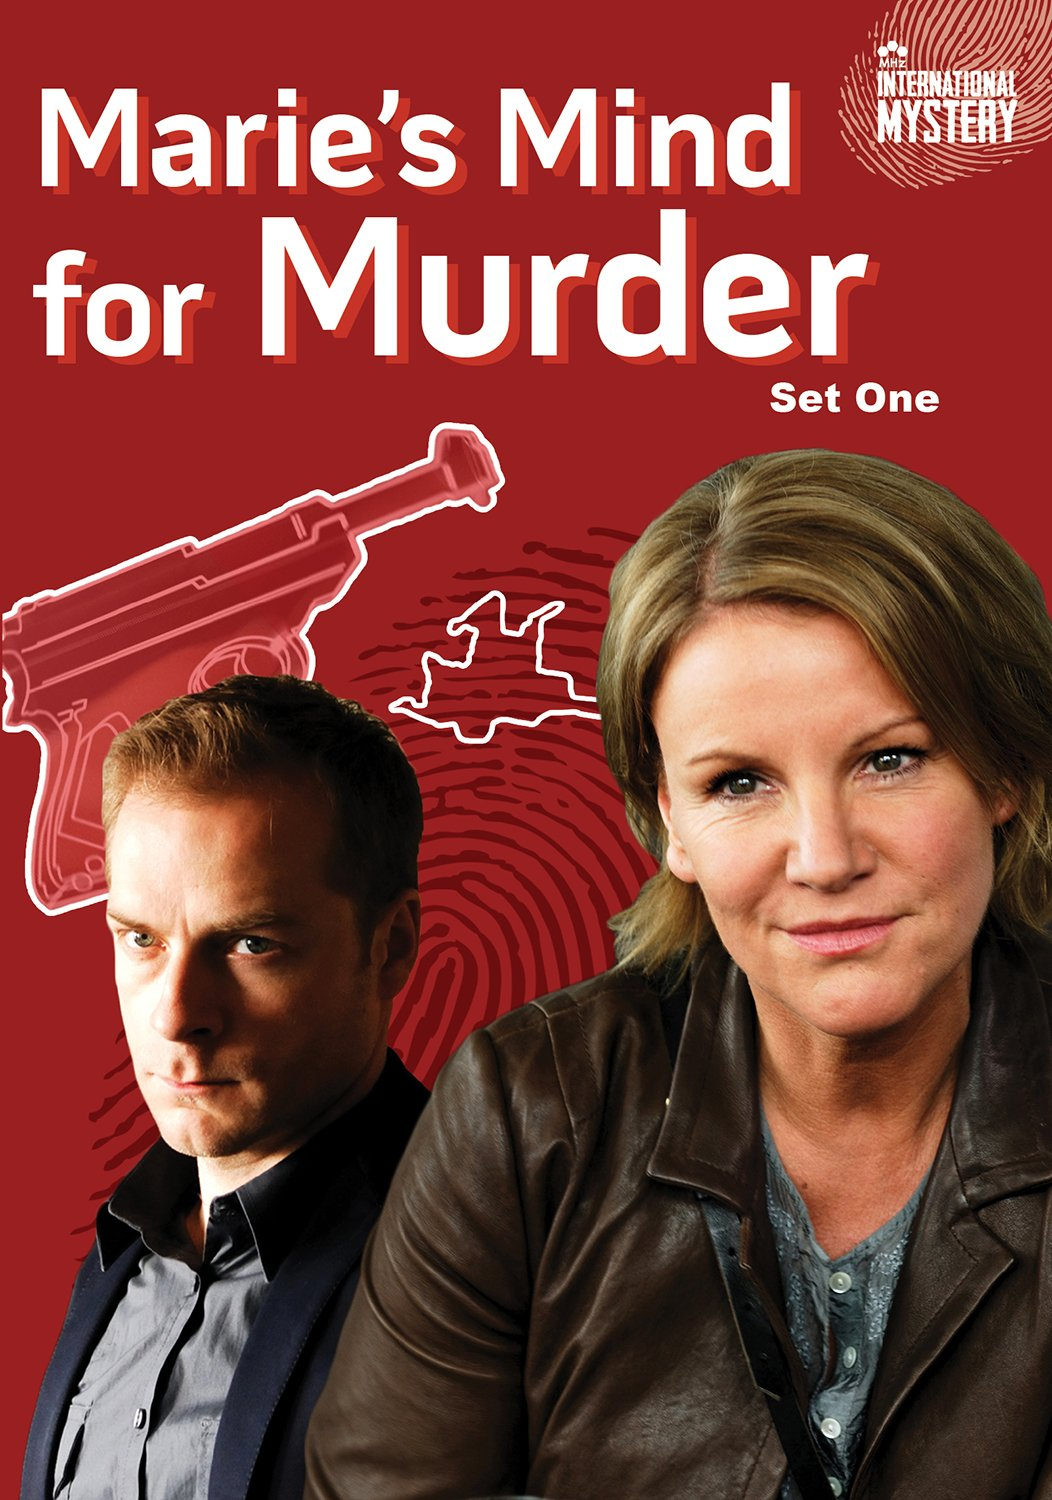 Marie's Mind for Murder: Set 1 by MHZ NETWORKS